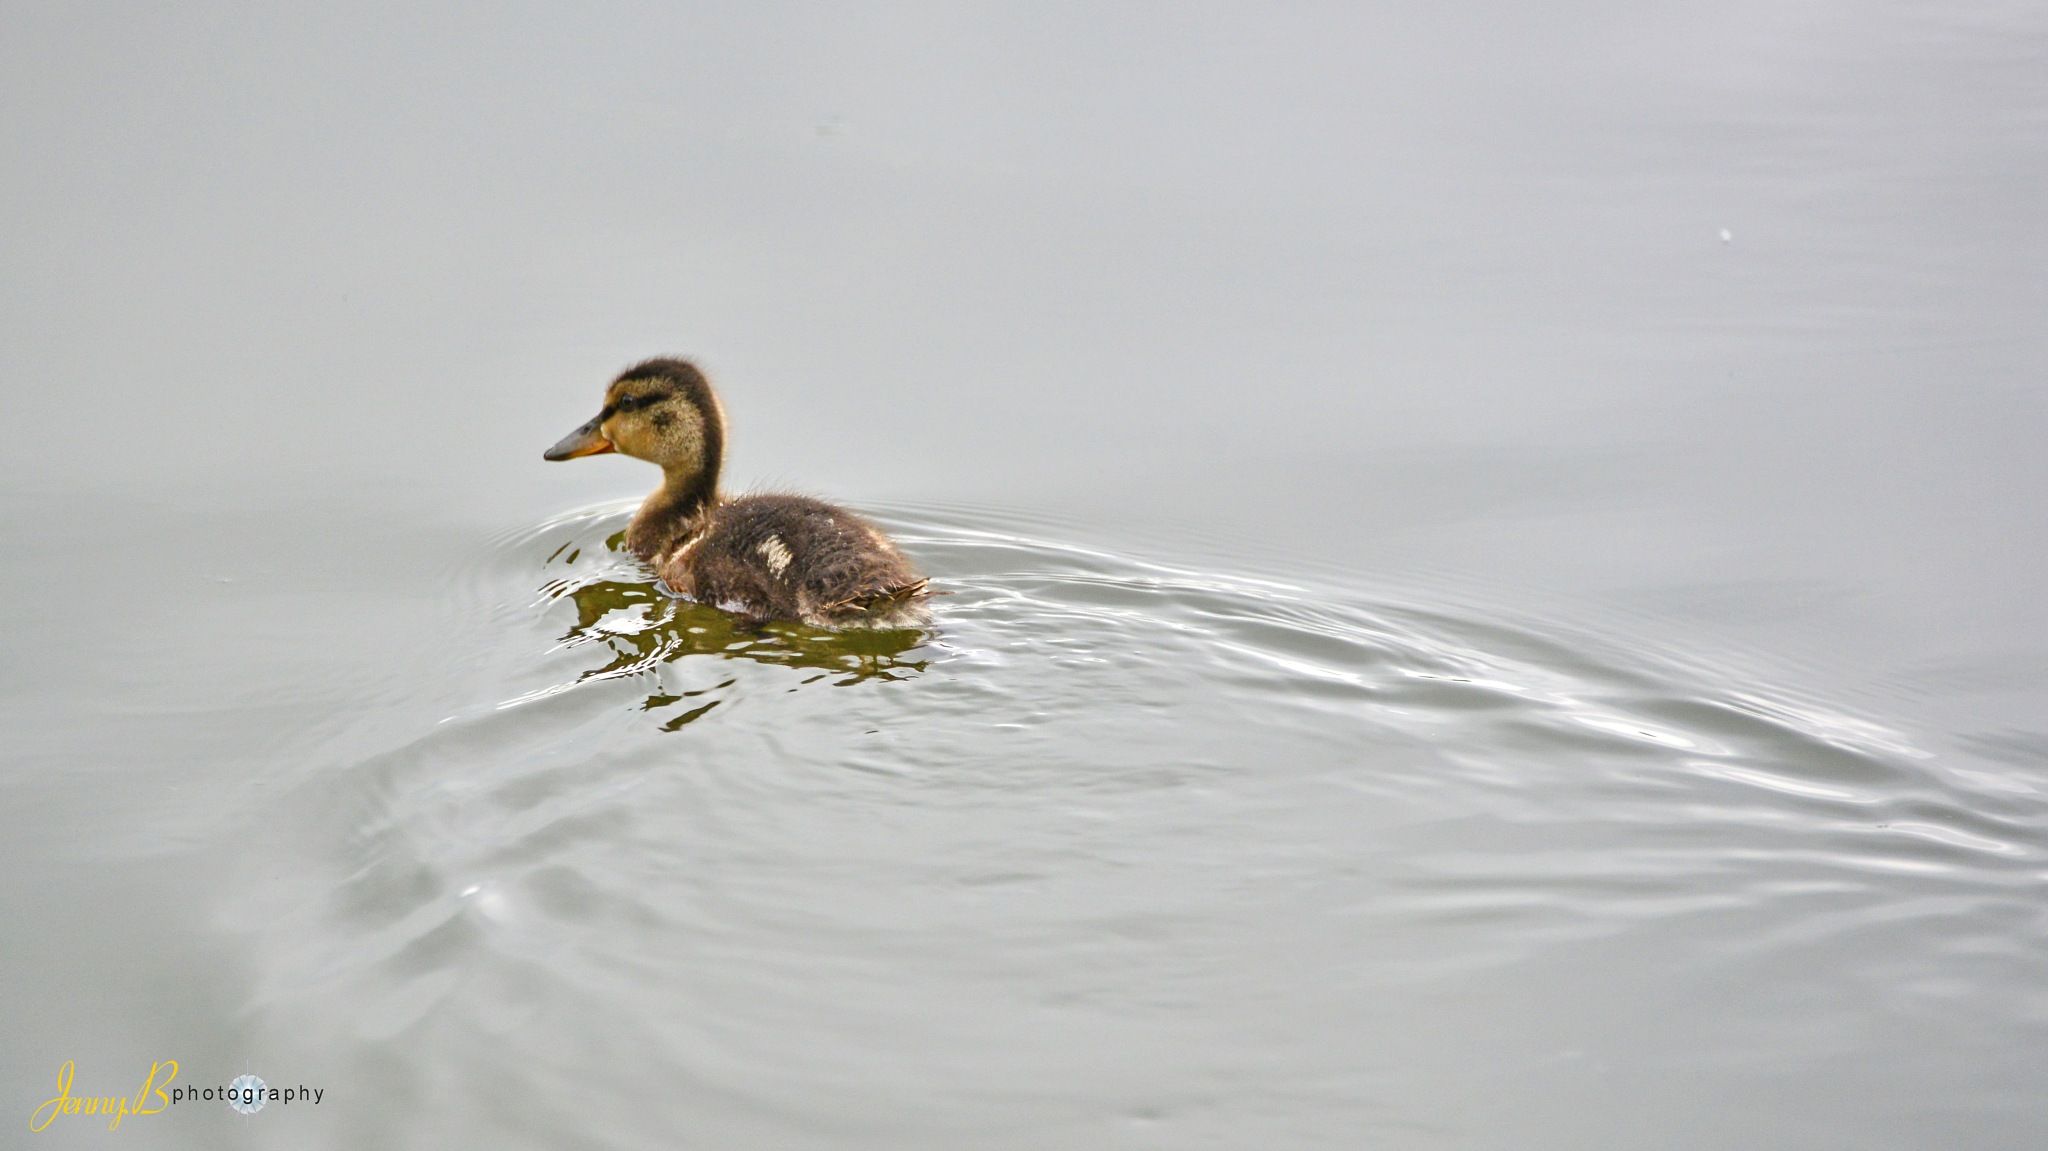 duckling by jb_127  ( jennybphotography)